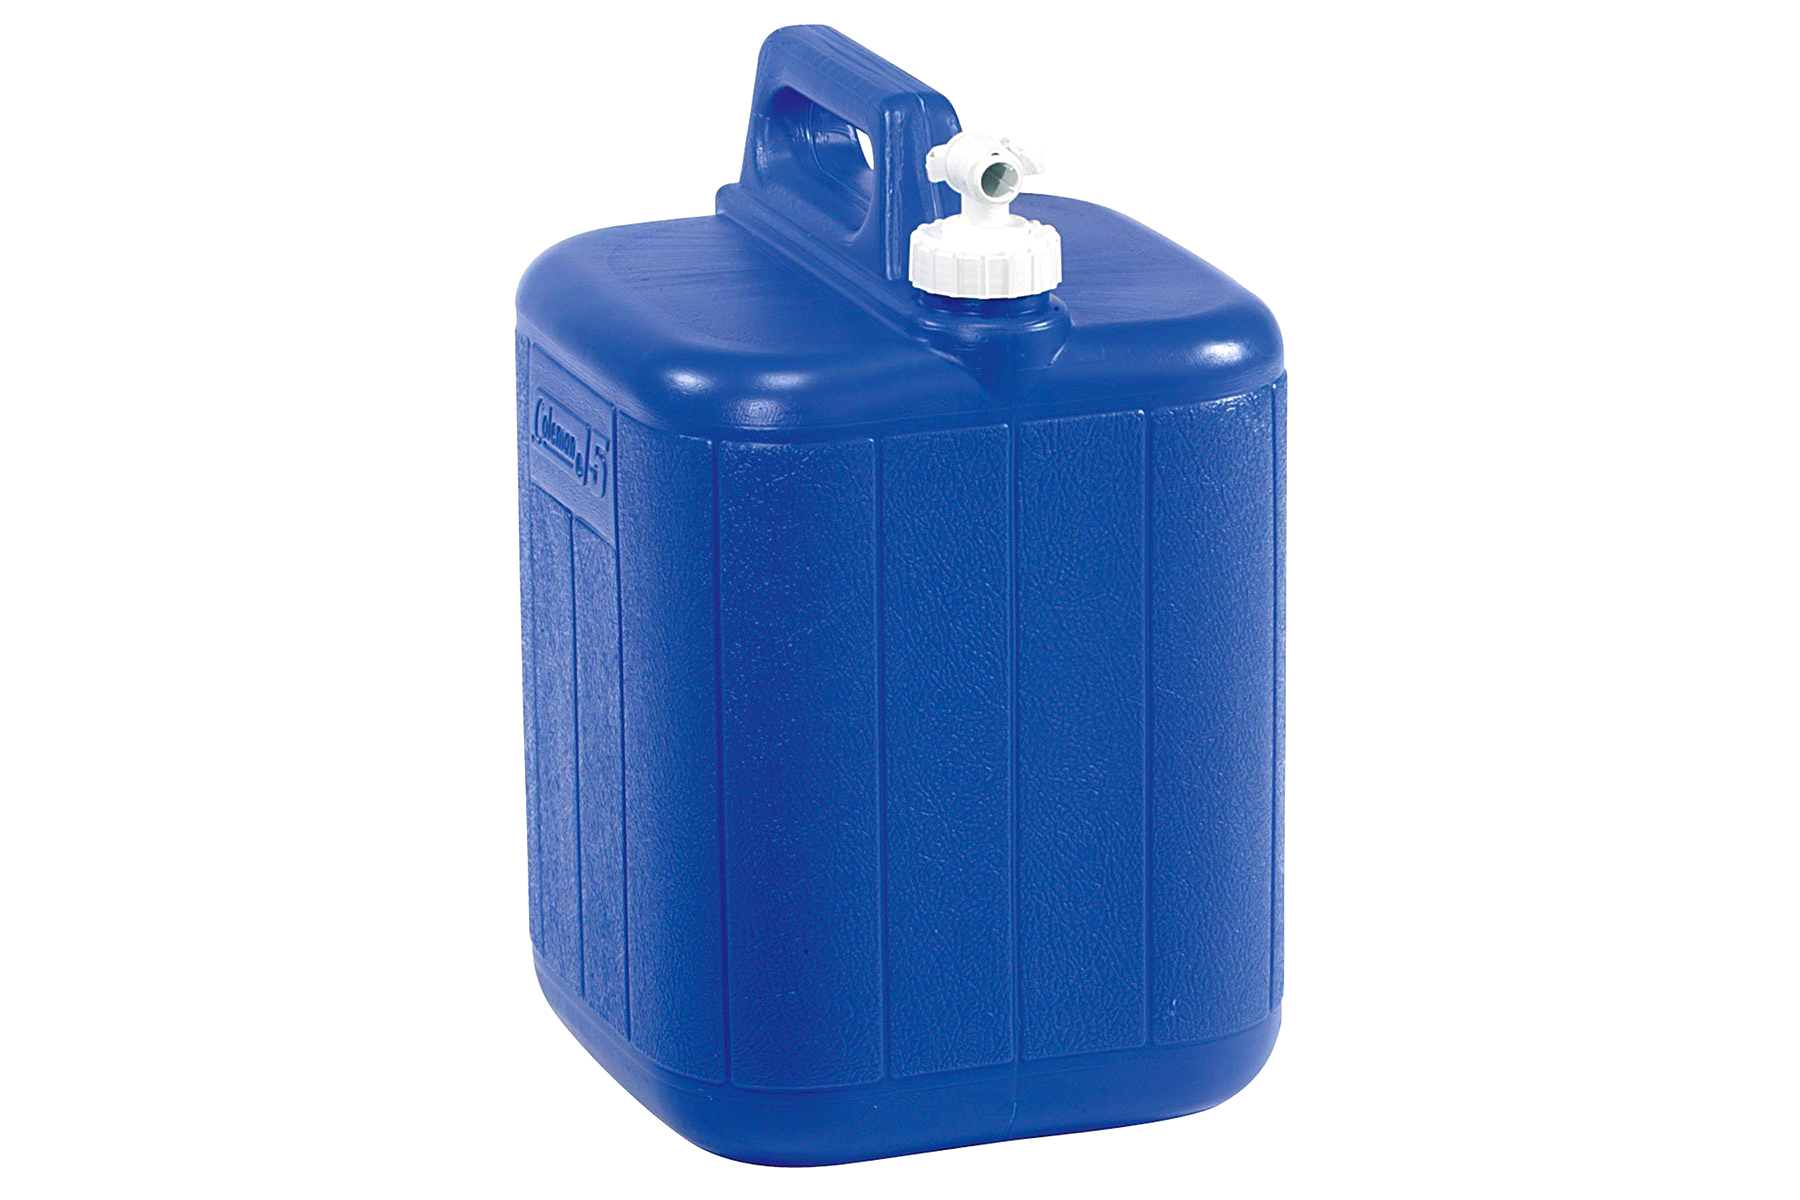 5 Gallon Water Carrier - 4.5 stars - $13 (Prime)